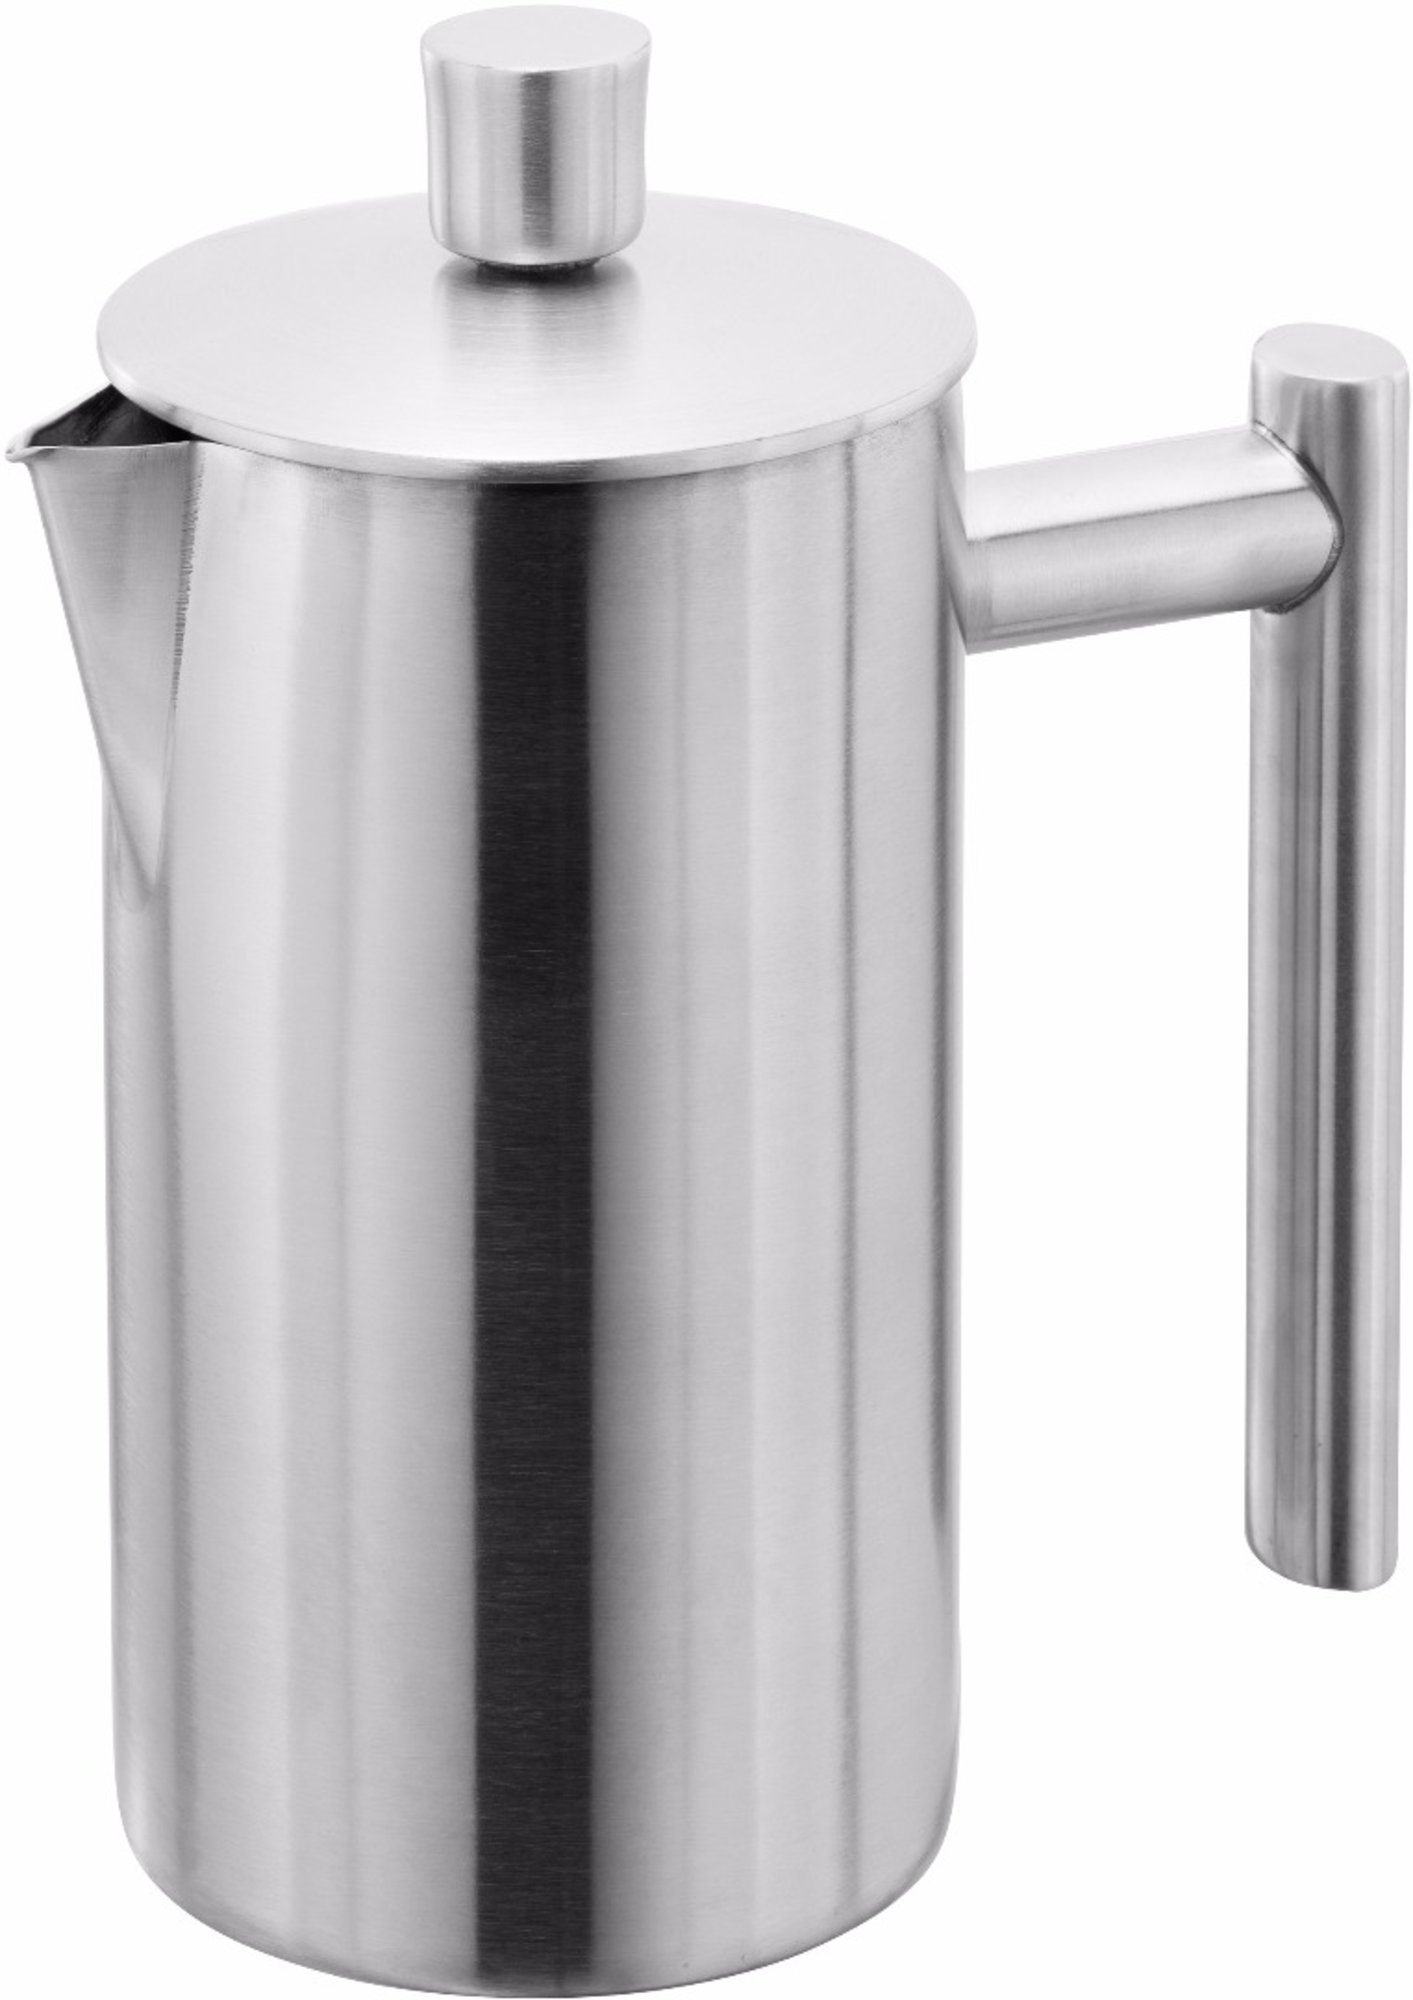 Horwood Cafetiere Doublewall 325ml 3 cup